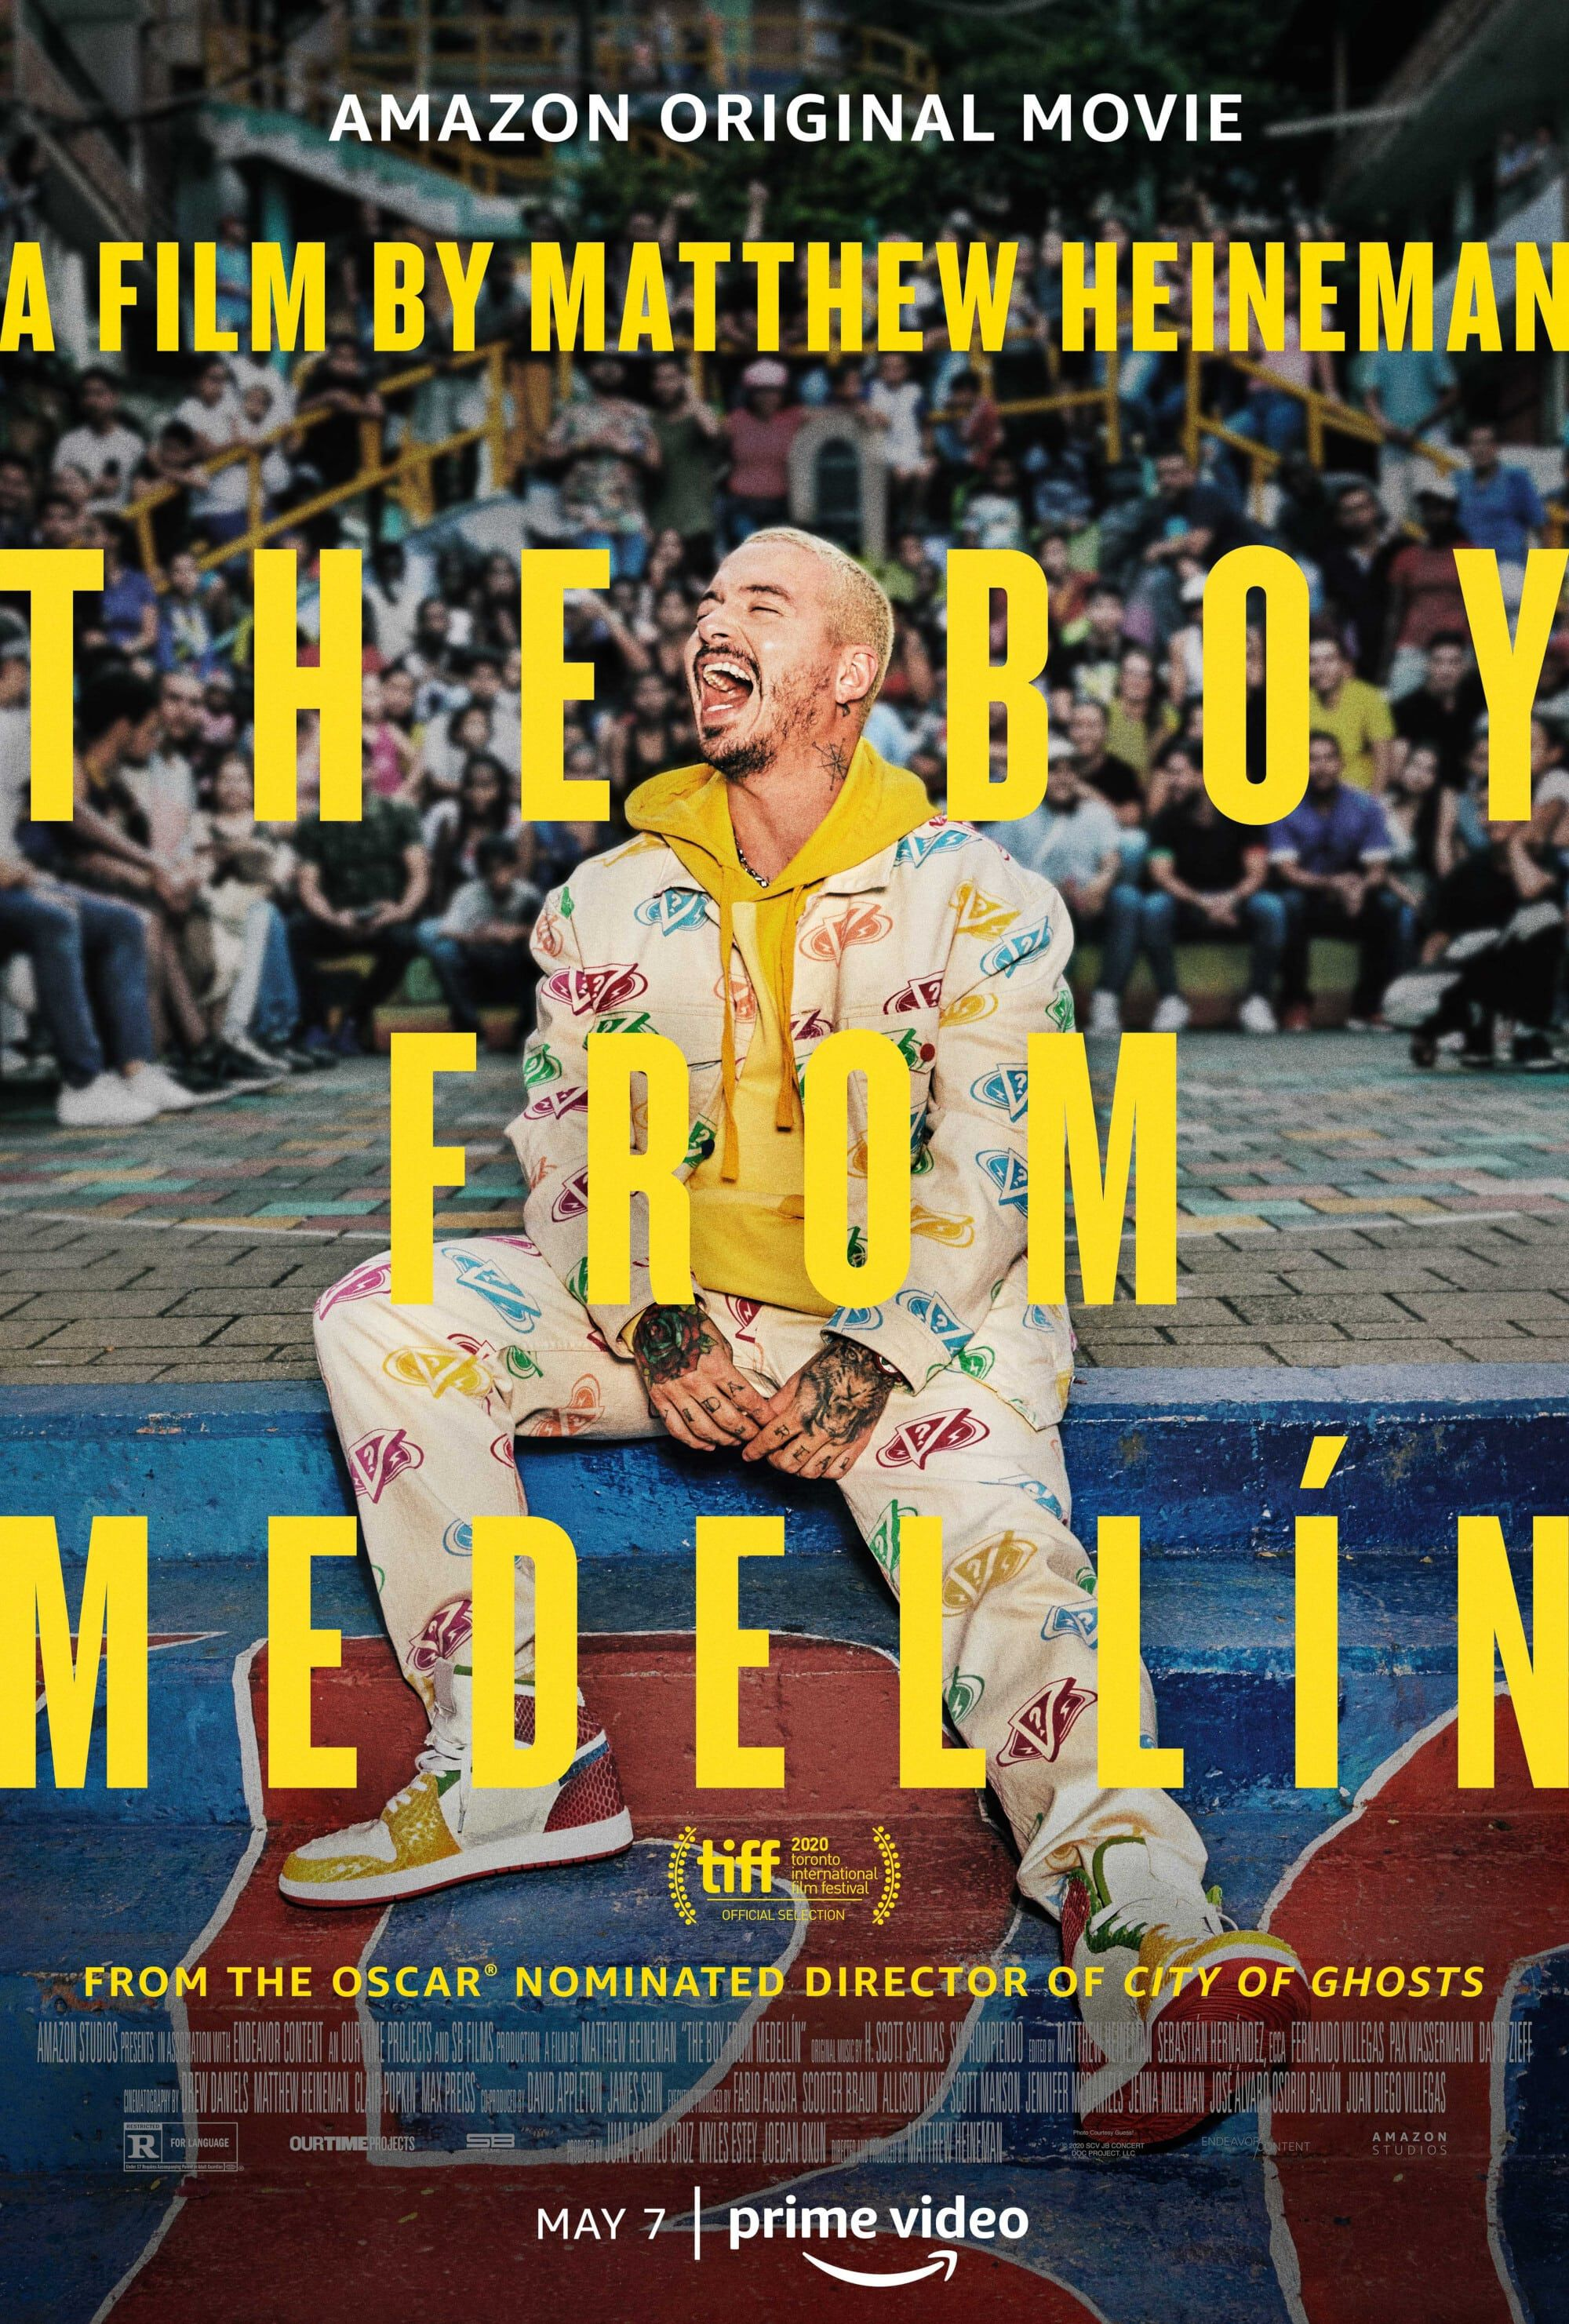 Voir Film The Boy from Medellín - Documentaire (2021) streaming VF gratuit complet